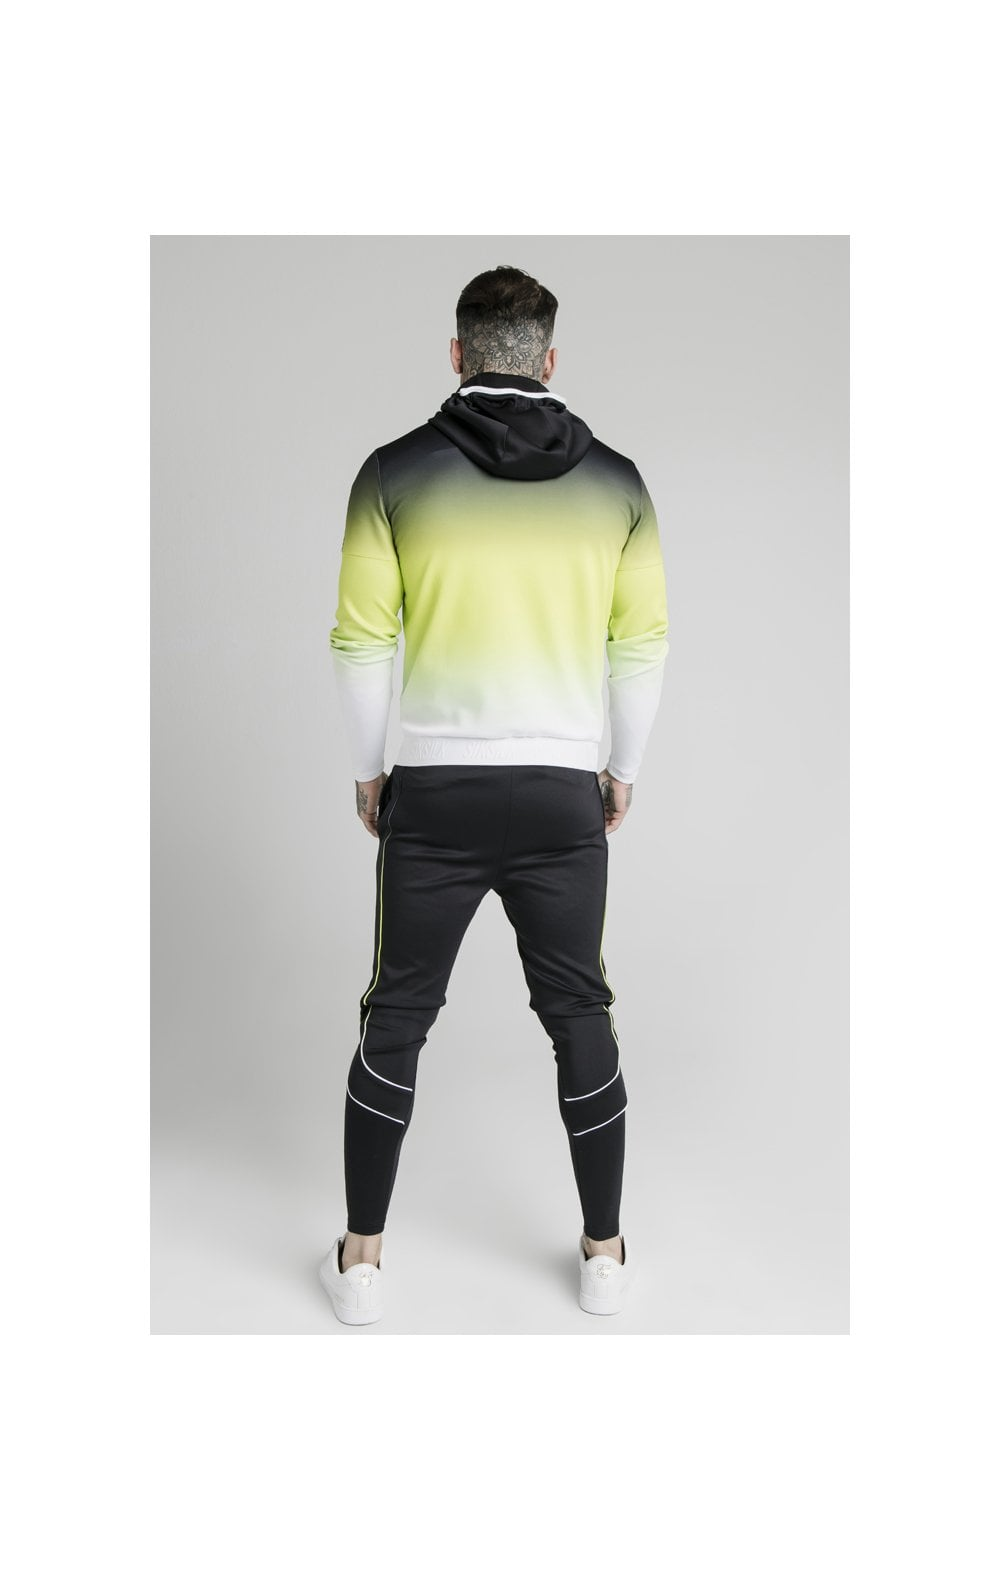 SikSilk Tri-Fade Agility Zip Through Hoodie - Black, Fluro & White (4)